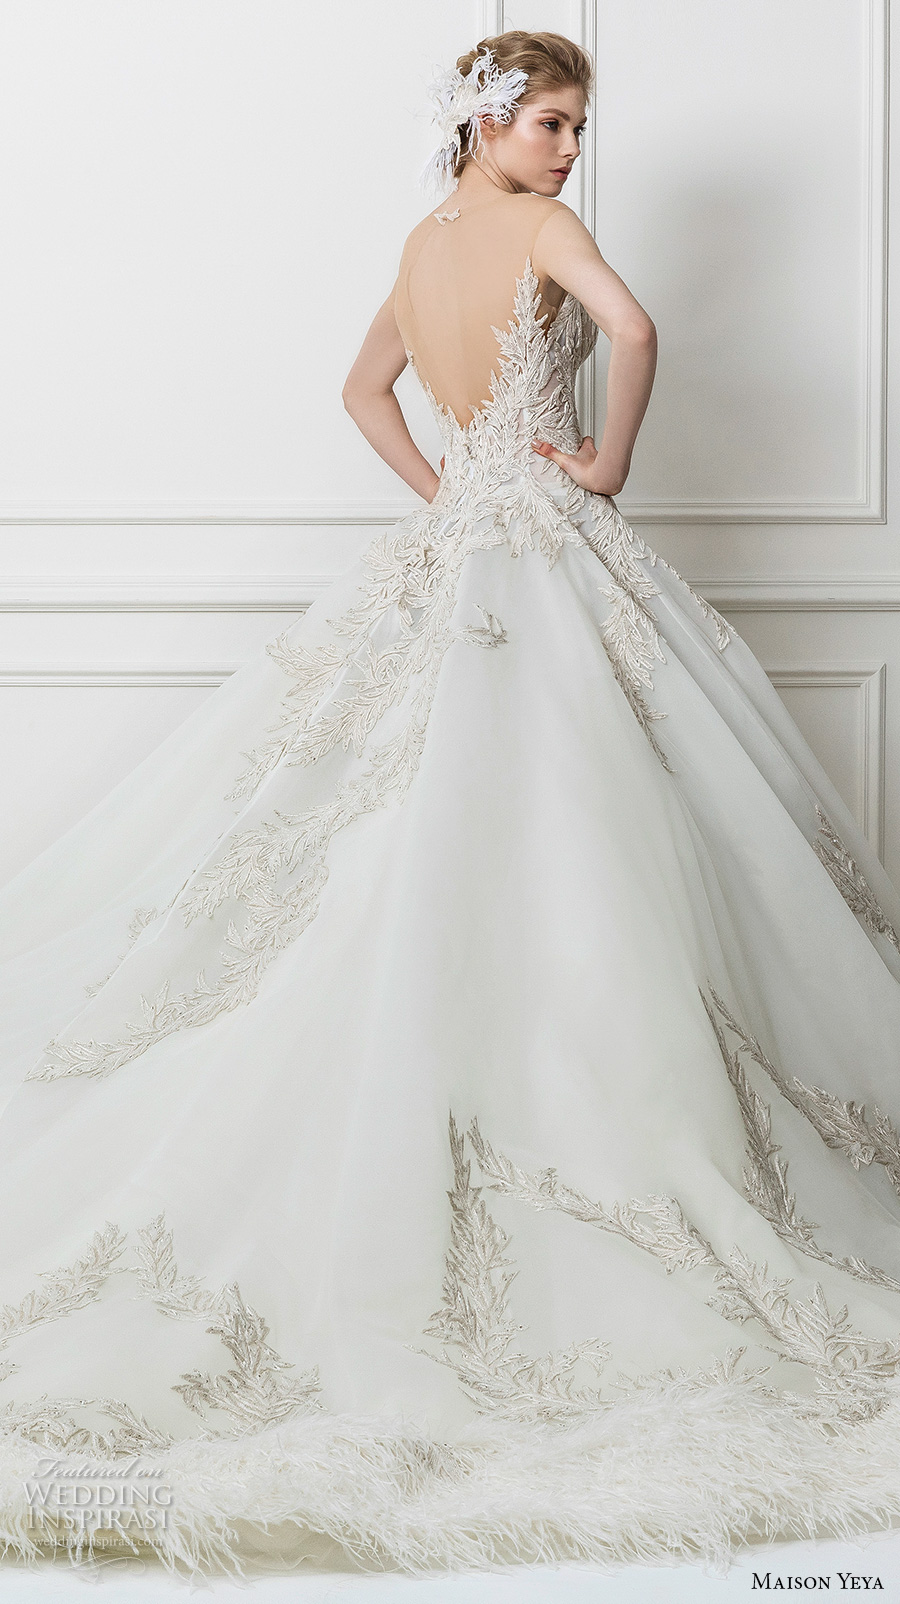 maison yeya 2017 bridal strapless sweetheart neckline heavily embellished bodice princess glamorous ball gown wedding dress open v back royal train (10) bv